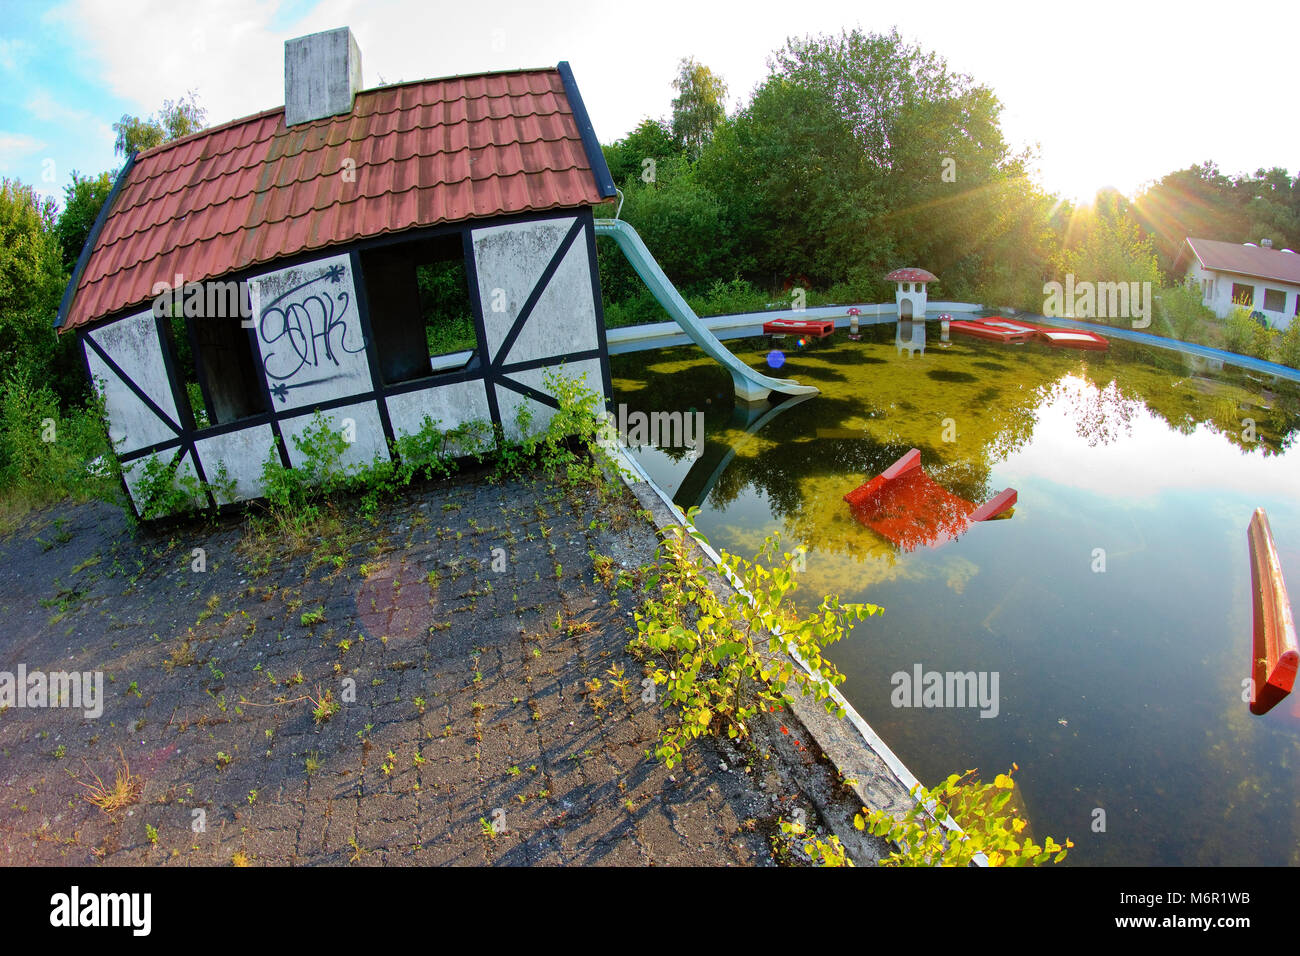 A Picture From The Fun Park Fyn In Denmark The Abandoned Fun Park Stock Photo Alamy